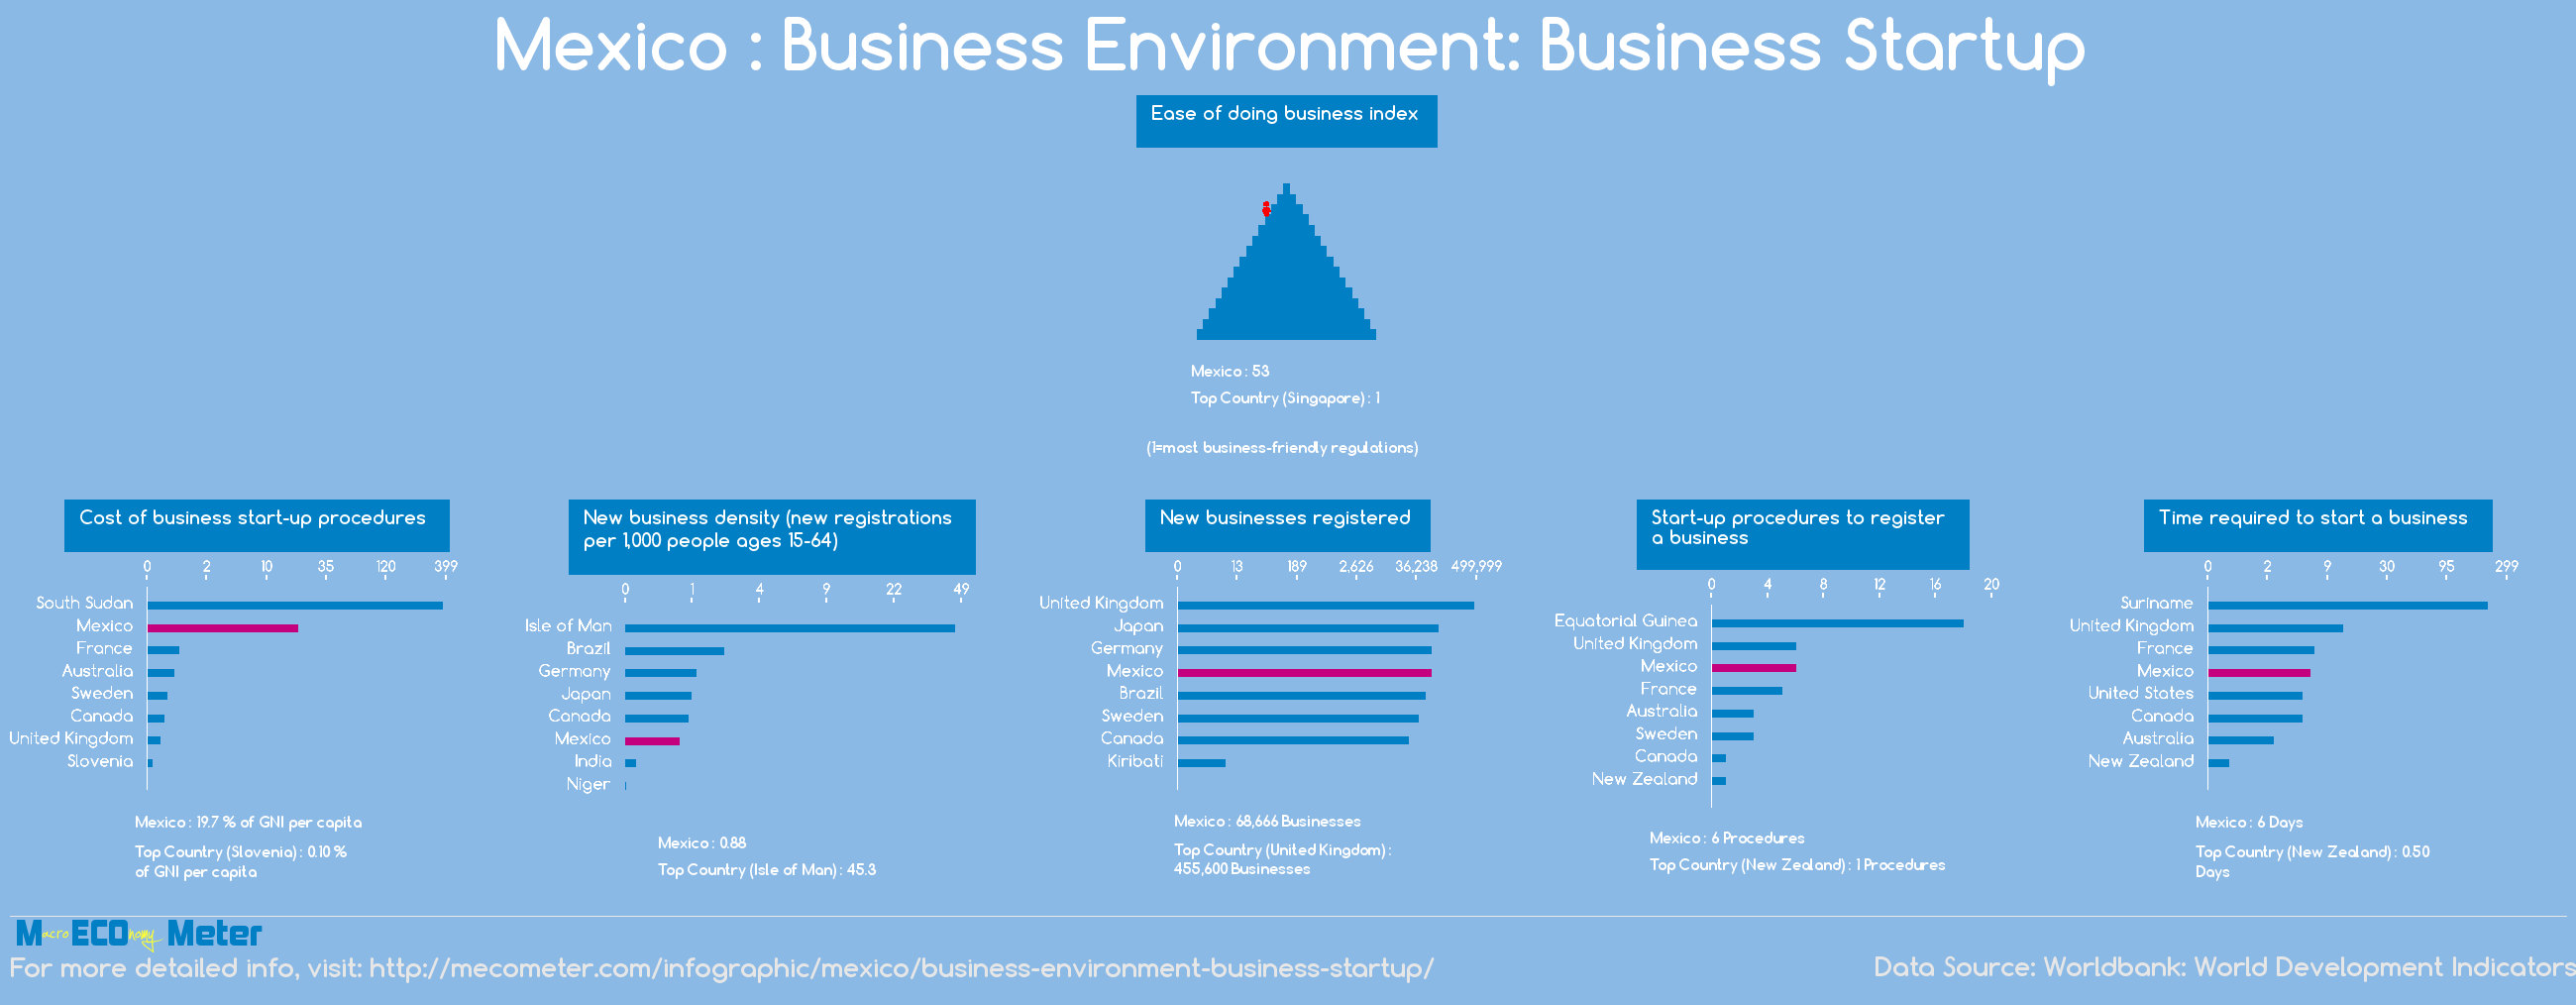 Mexico : Business Environment: Business Startup